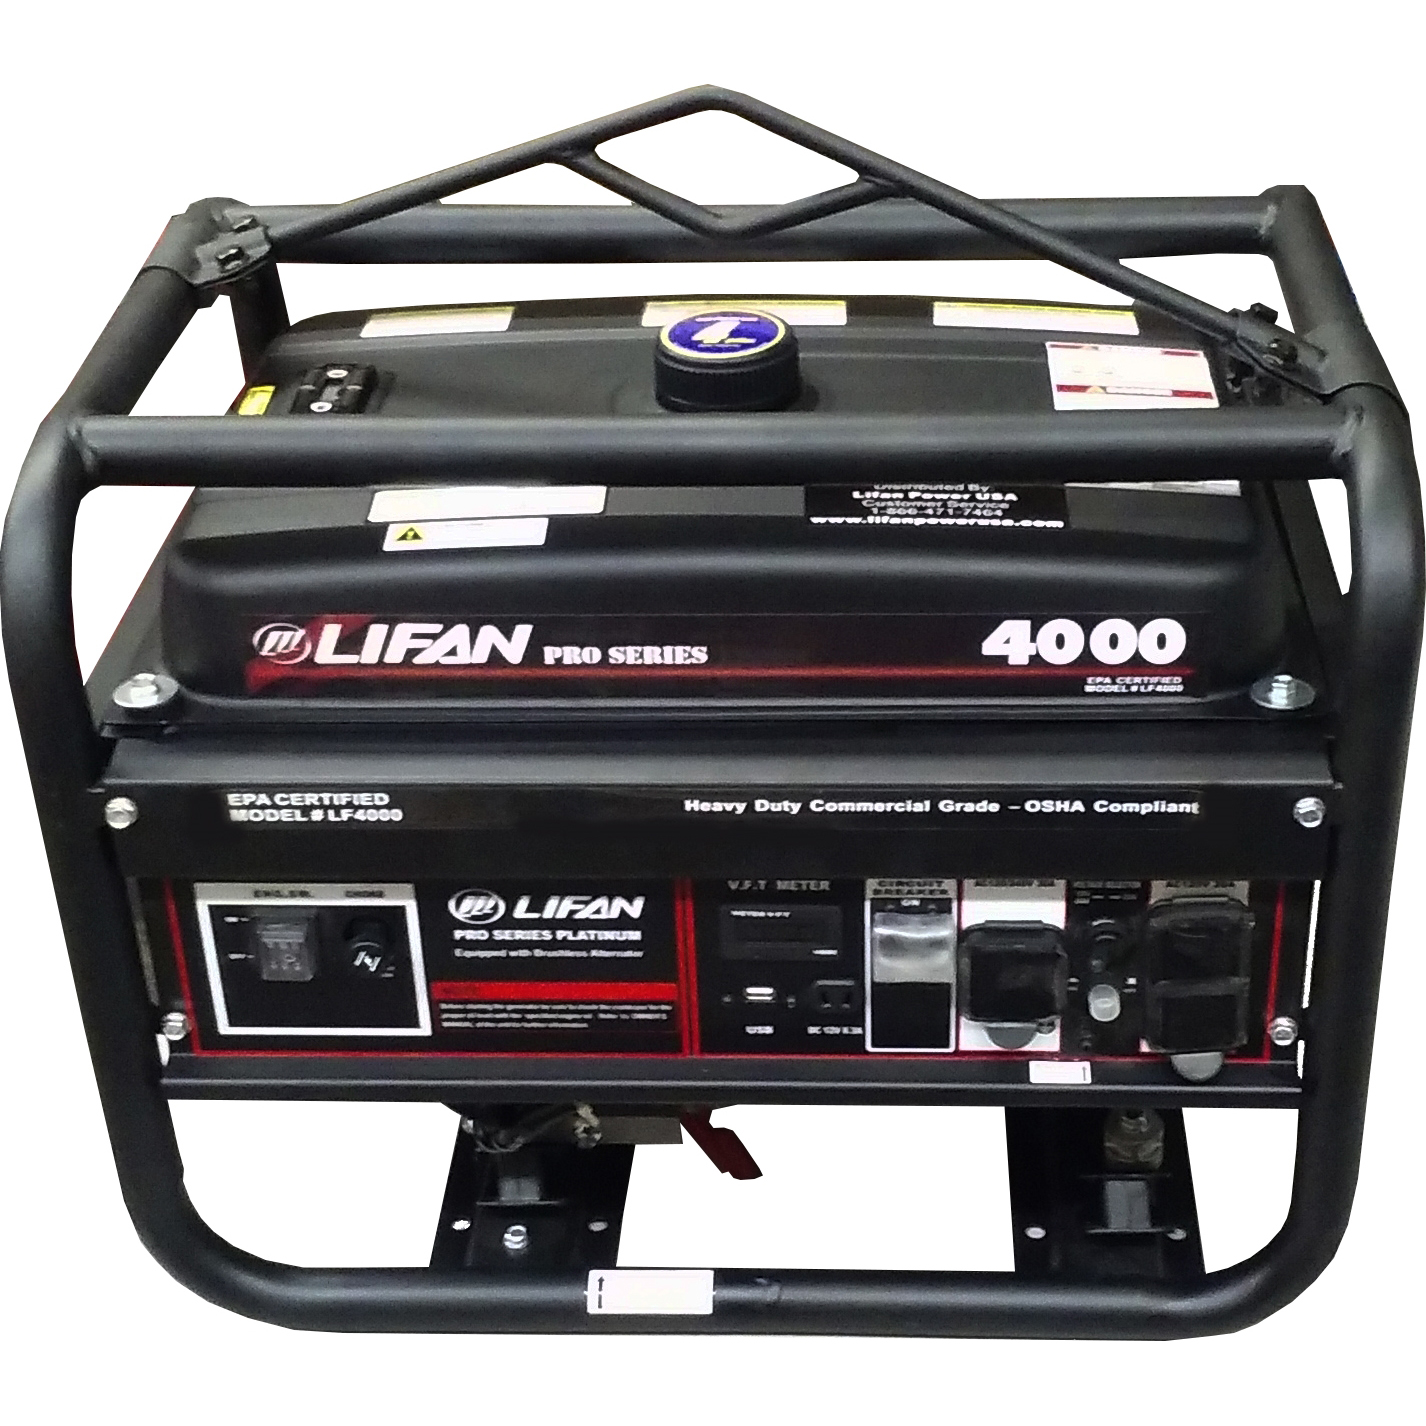 Picture of LIFAN LF4000 Portable Generator, 30 A, 120/240 V, 4000 W Output, Unleaded Gas, 4 gal Tank, 12 hr Run Time